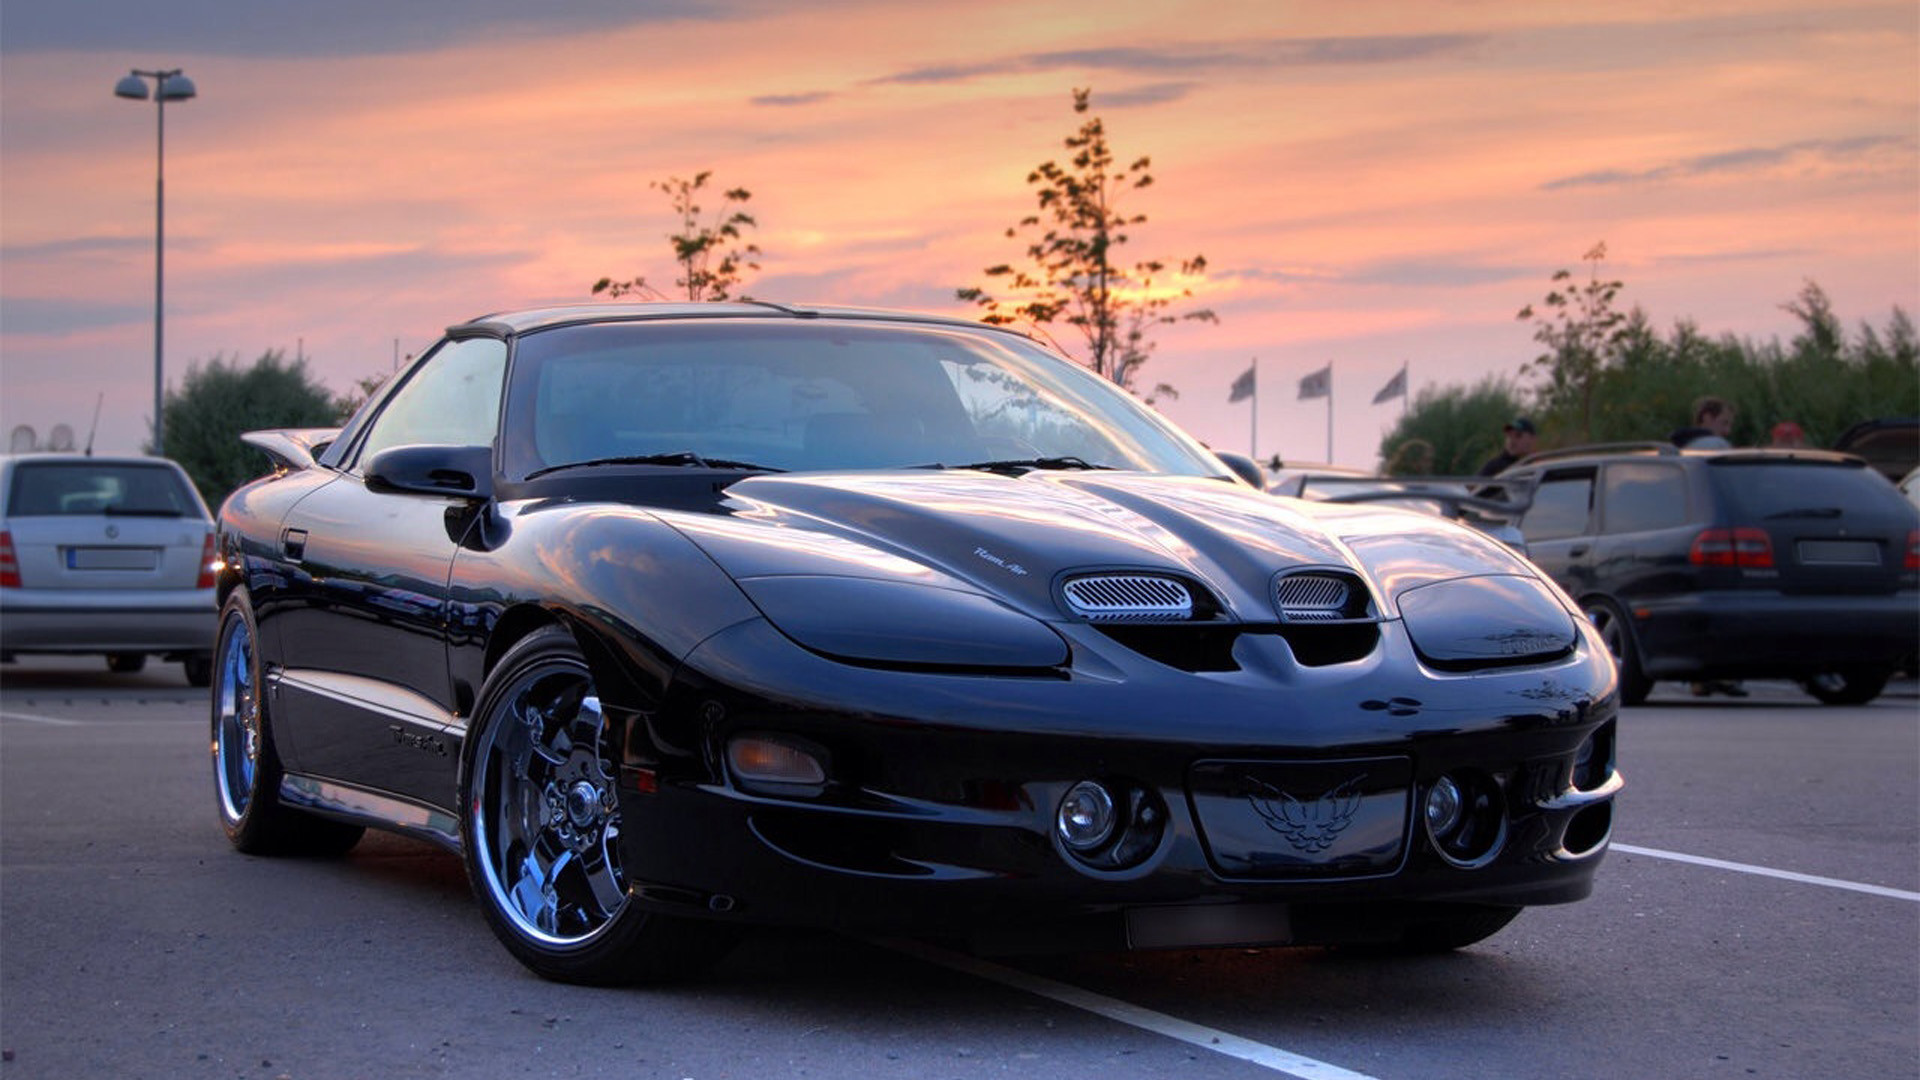 Ws6 Trans Am Wallpaper 39 images 1920x1080